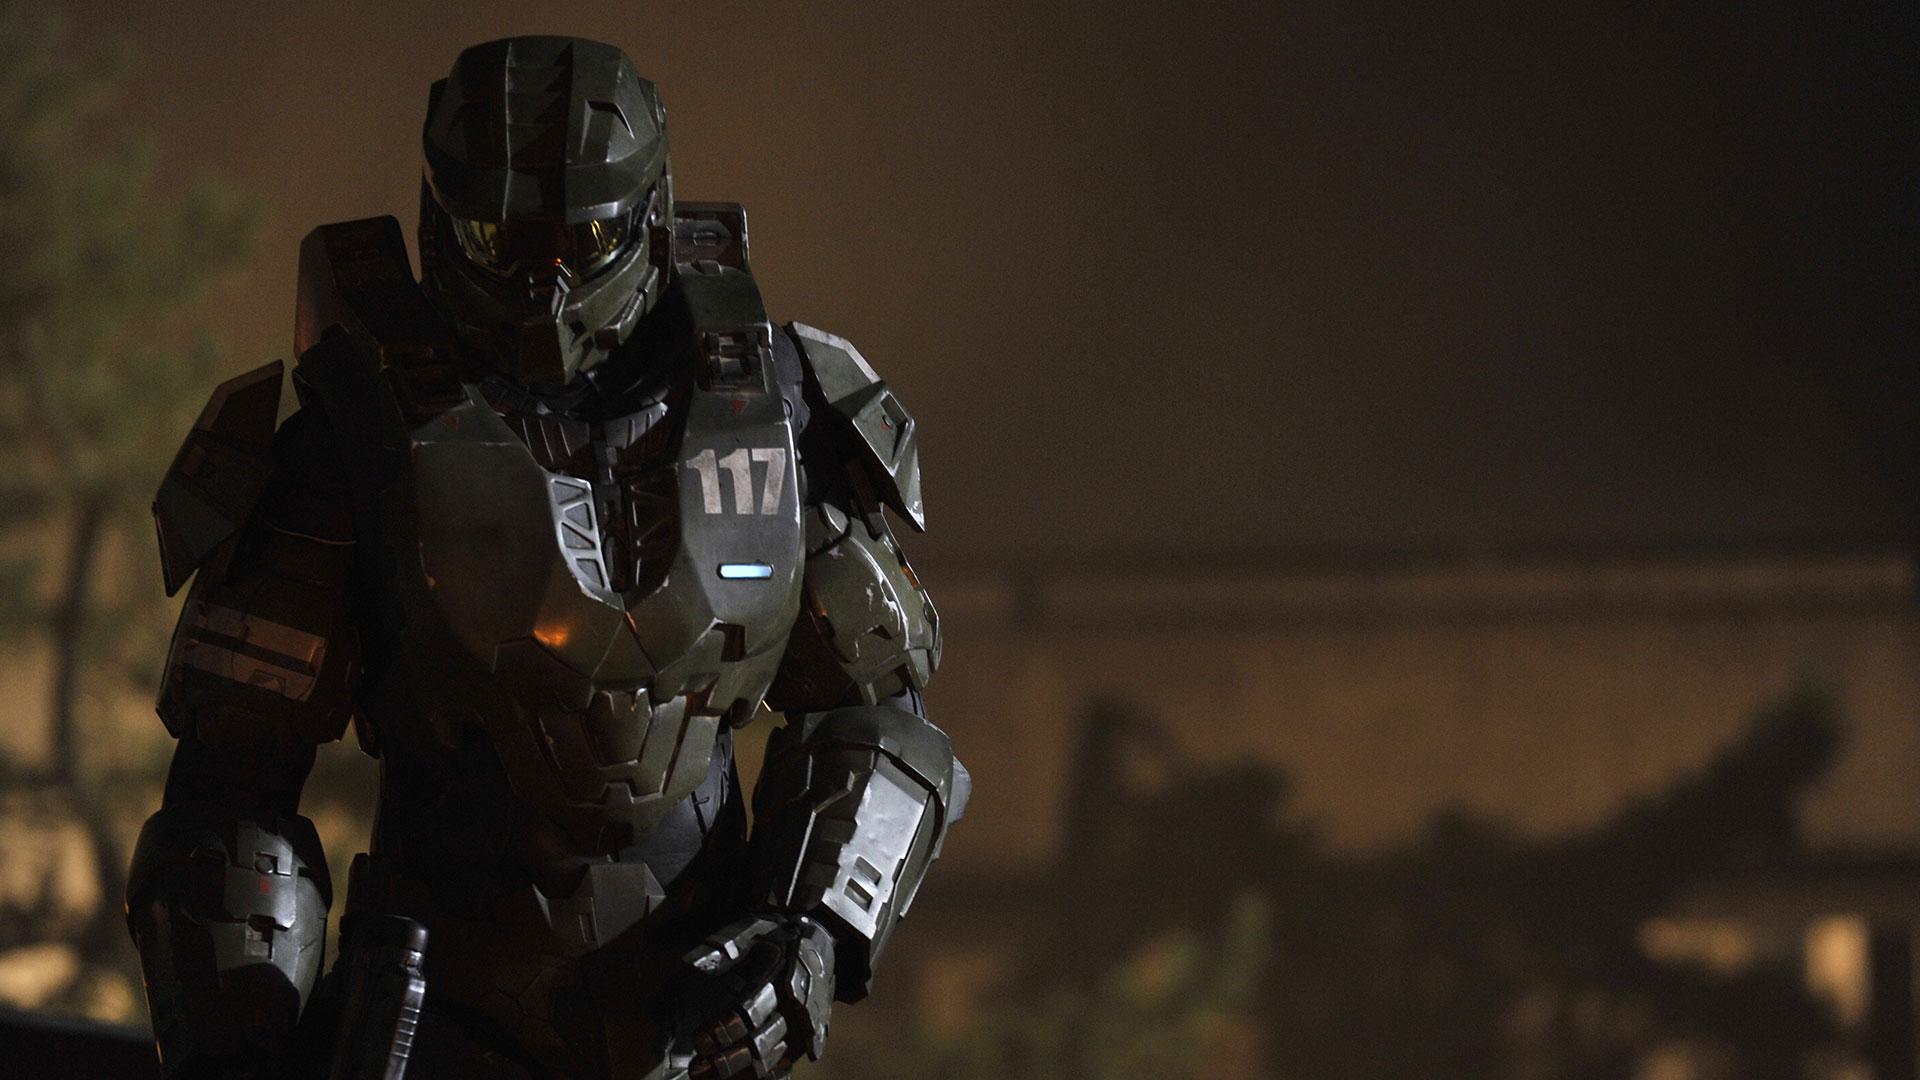 Master chief characters universe halo official site - Halo 4 photos ...